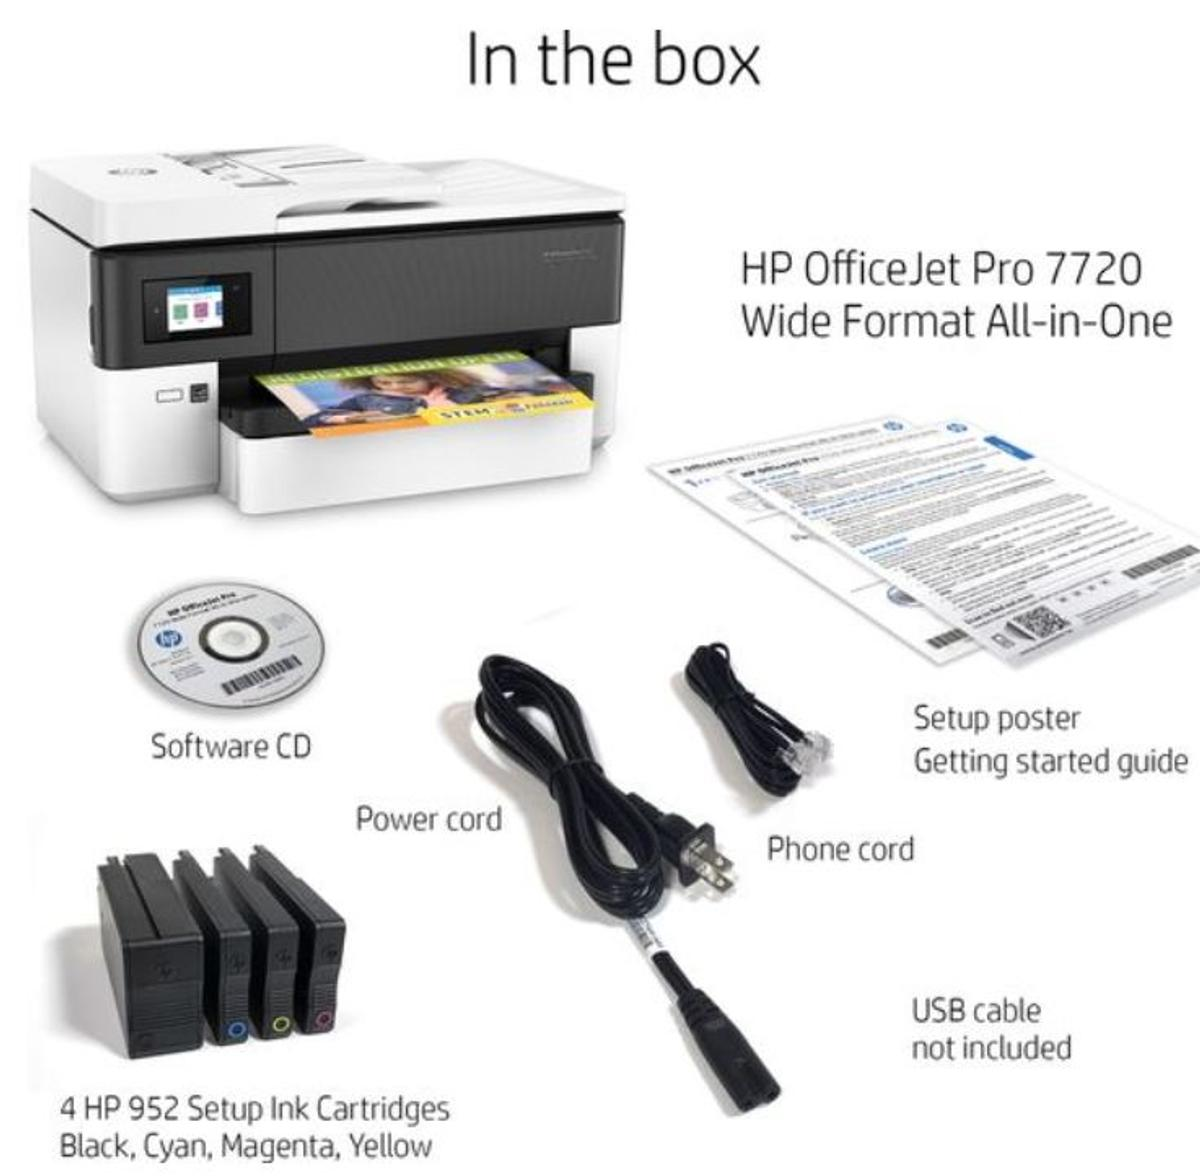 HP OfficeJet Pro 7720 A3 Printer with Fax in TW14 Hounslow